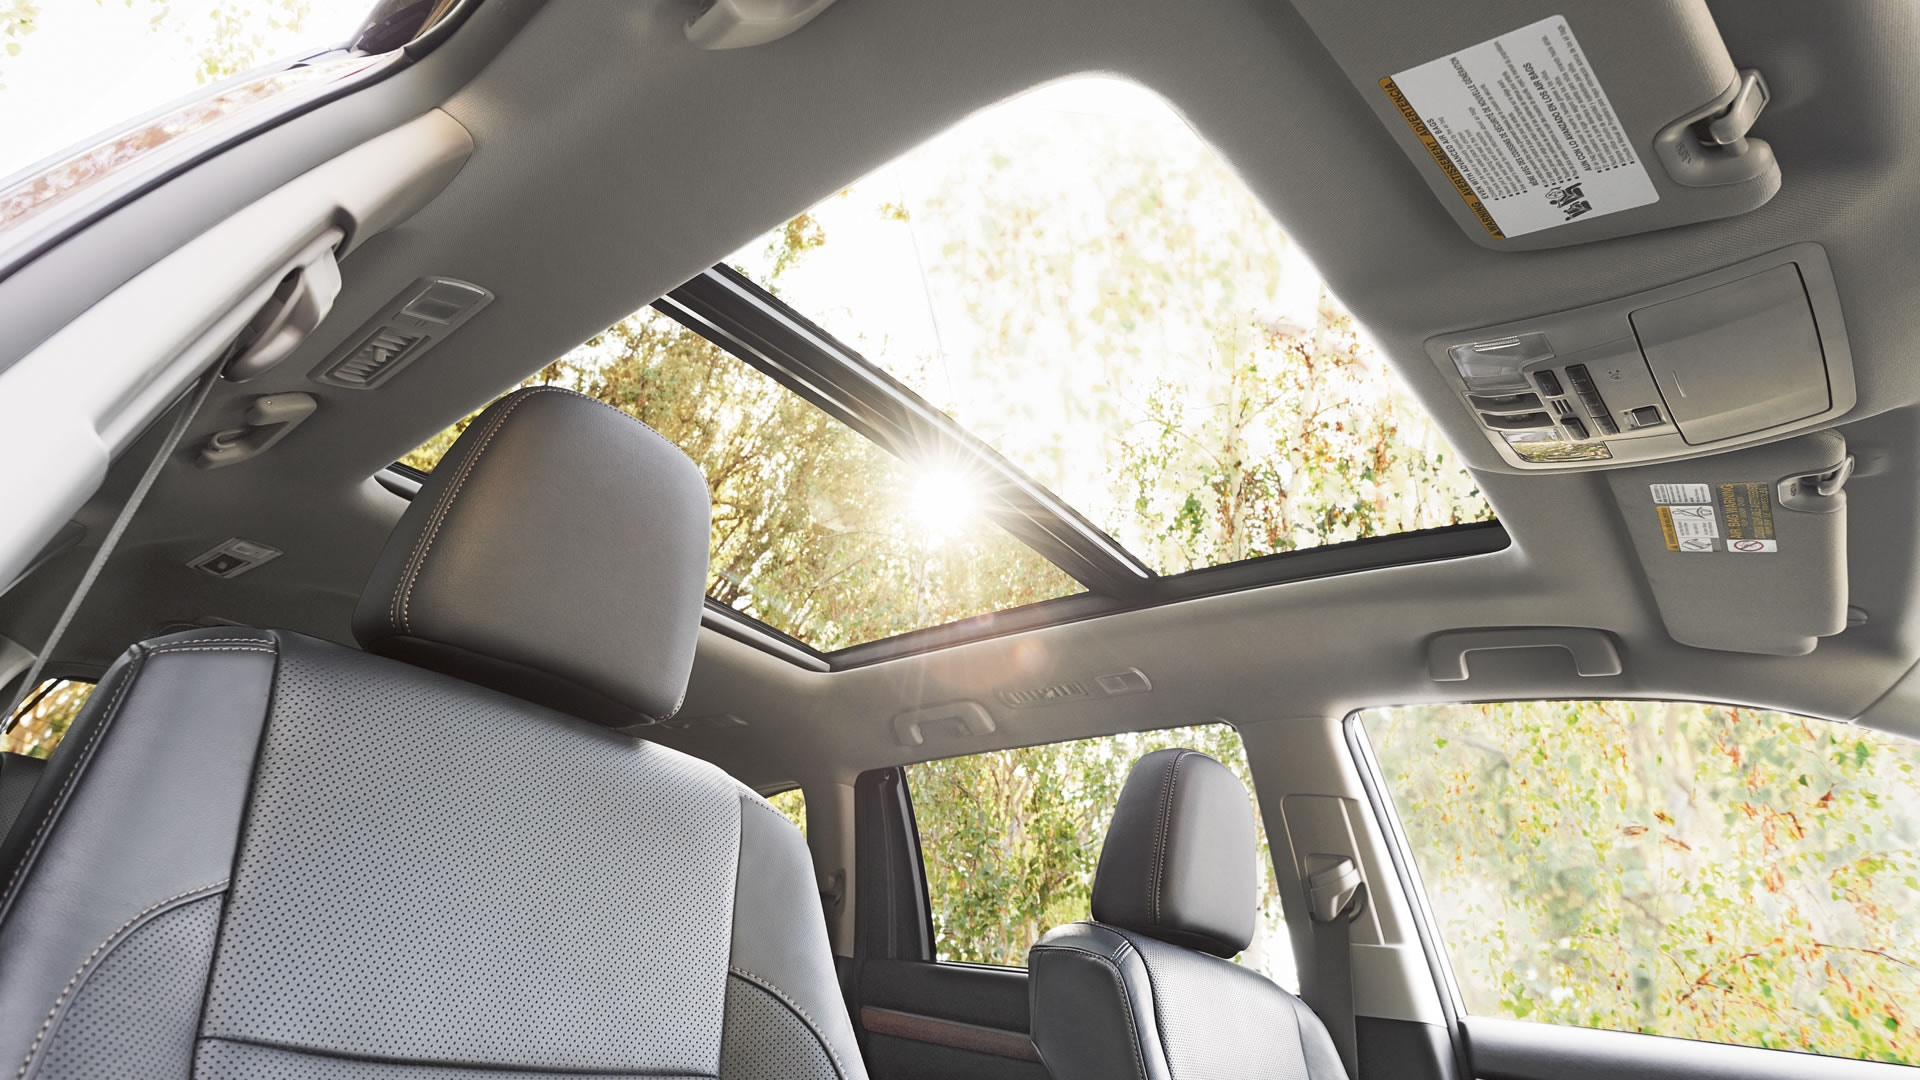 Moonroof in the 2019 Highlander